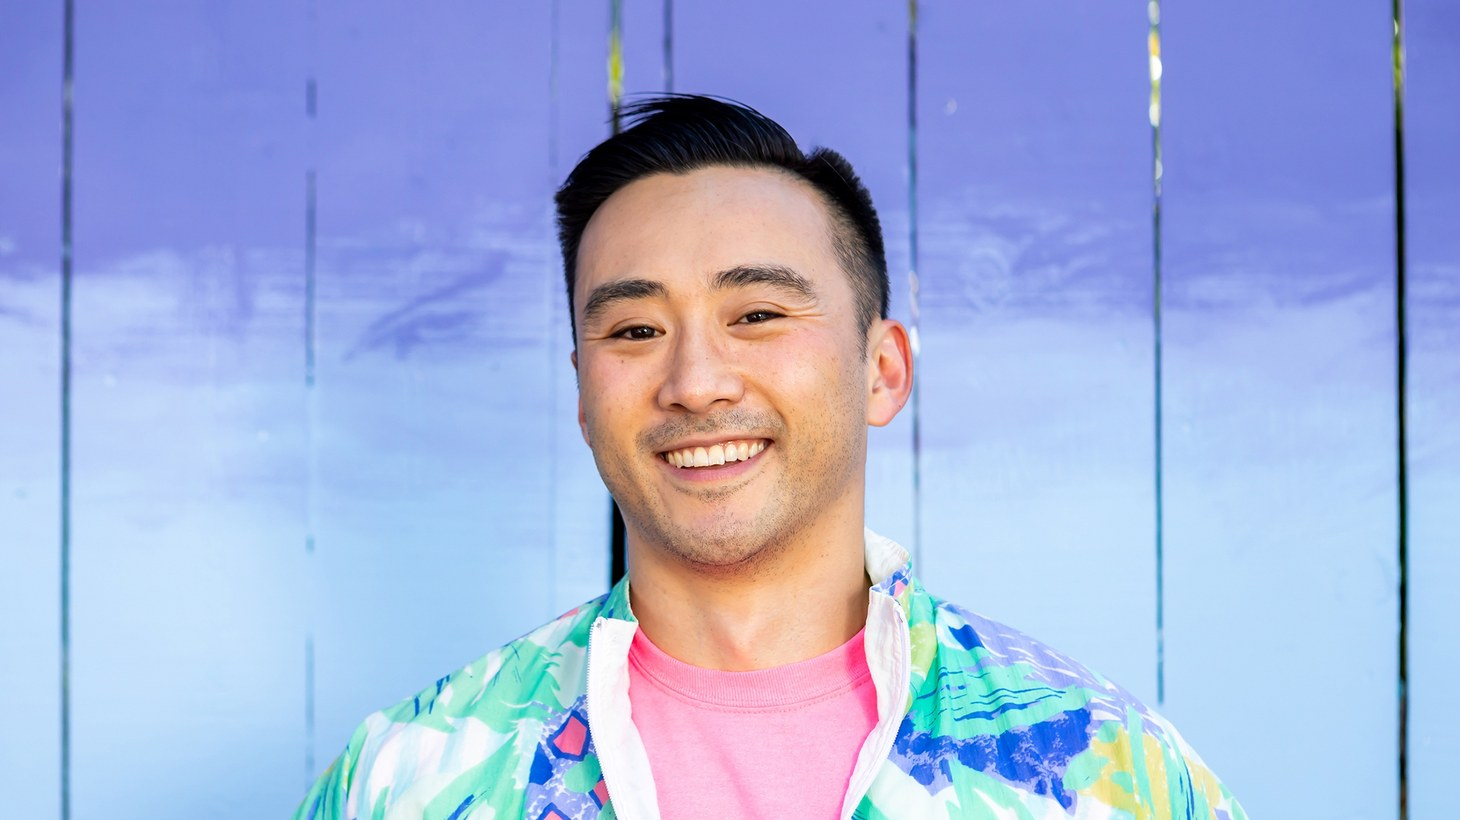 """In his new documentary """"A Sexplanation,"""" journalist and director Alexander Liu embarks on a journey to understand the stigma around sex and sexu education."""